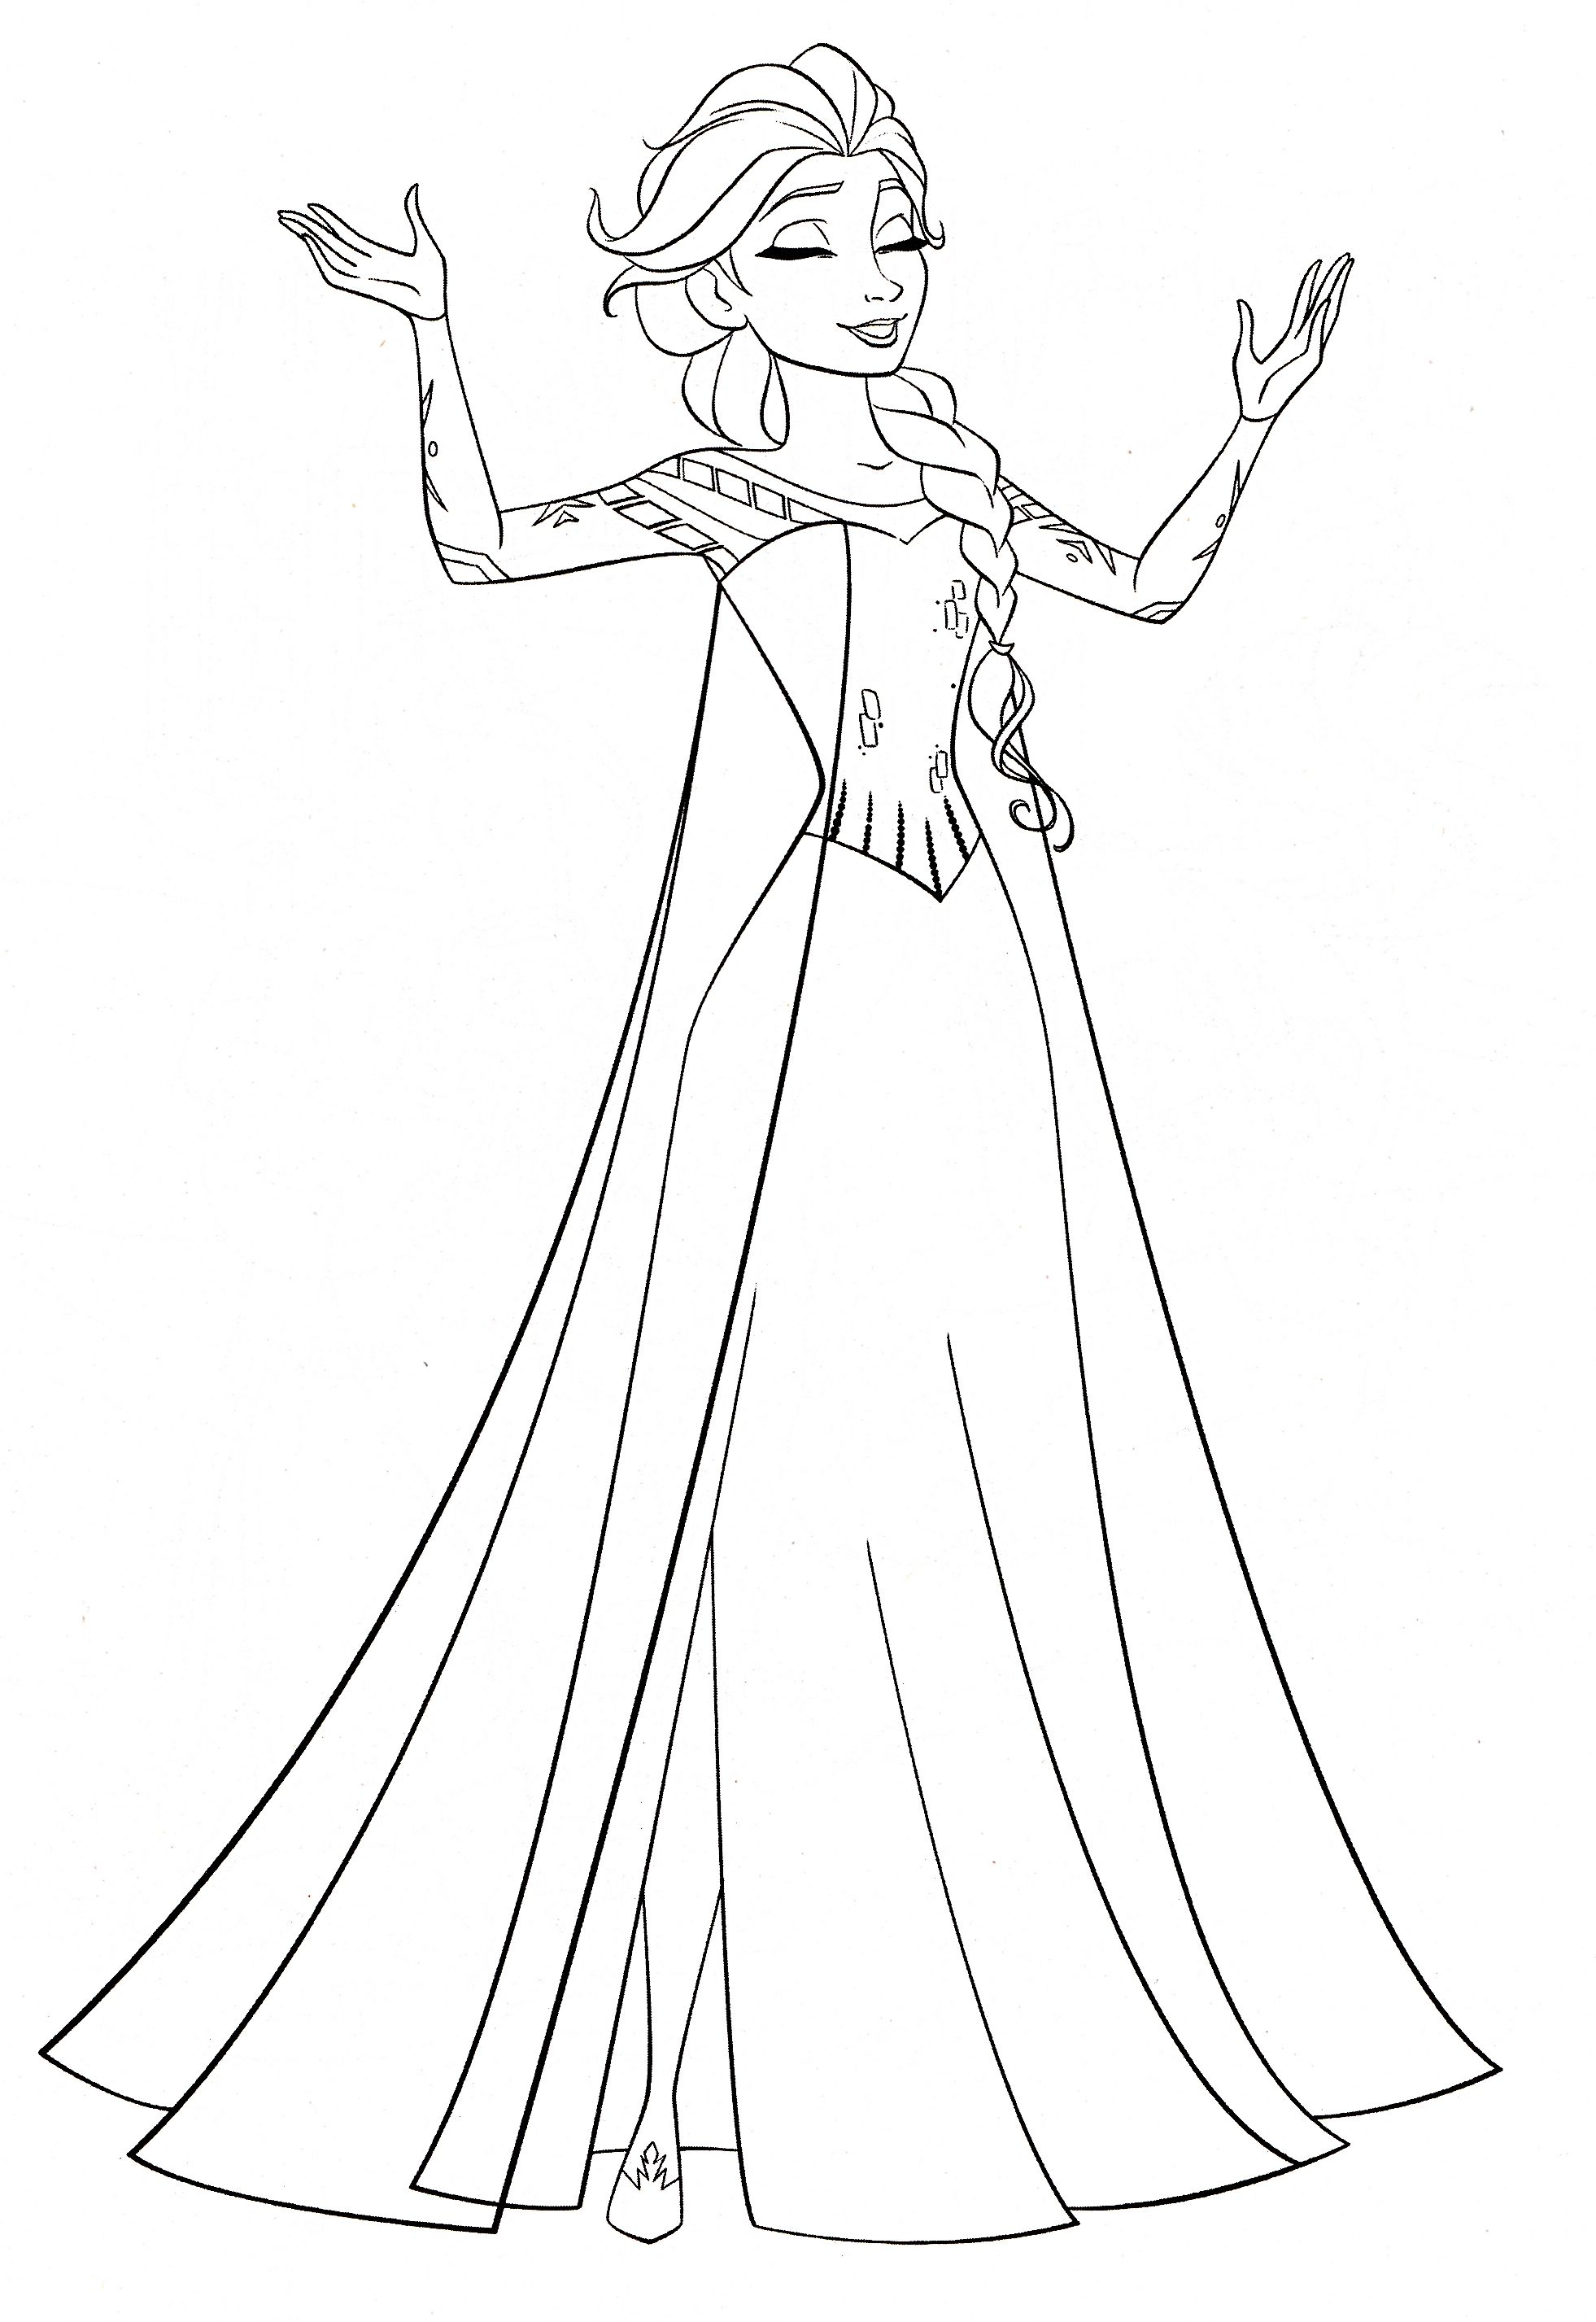 Frozen Coloring Pages Olaf Coloring Pages Elsa Coloring Pages For